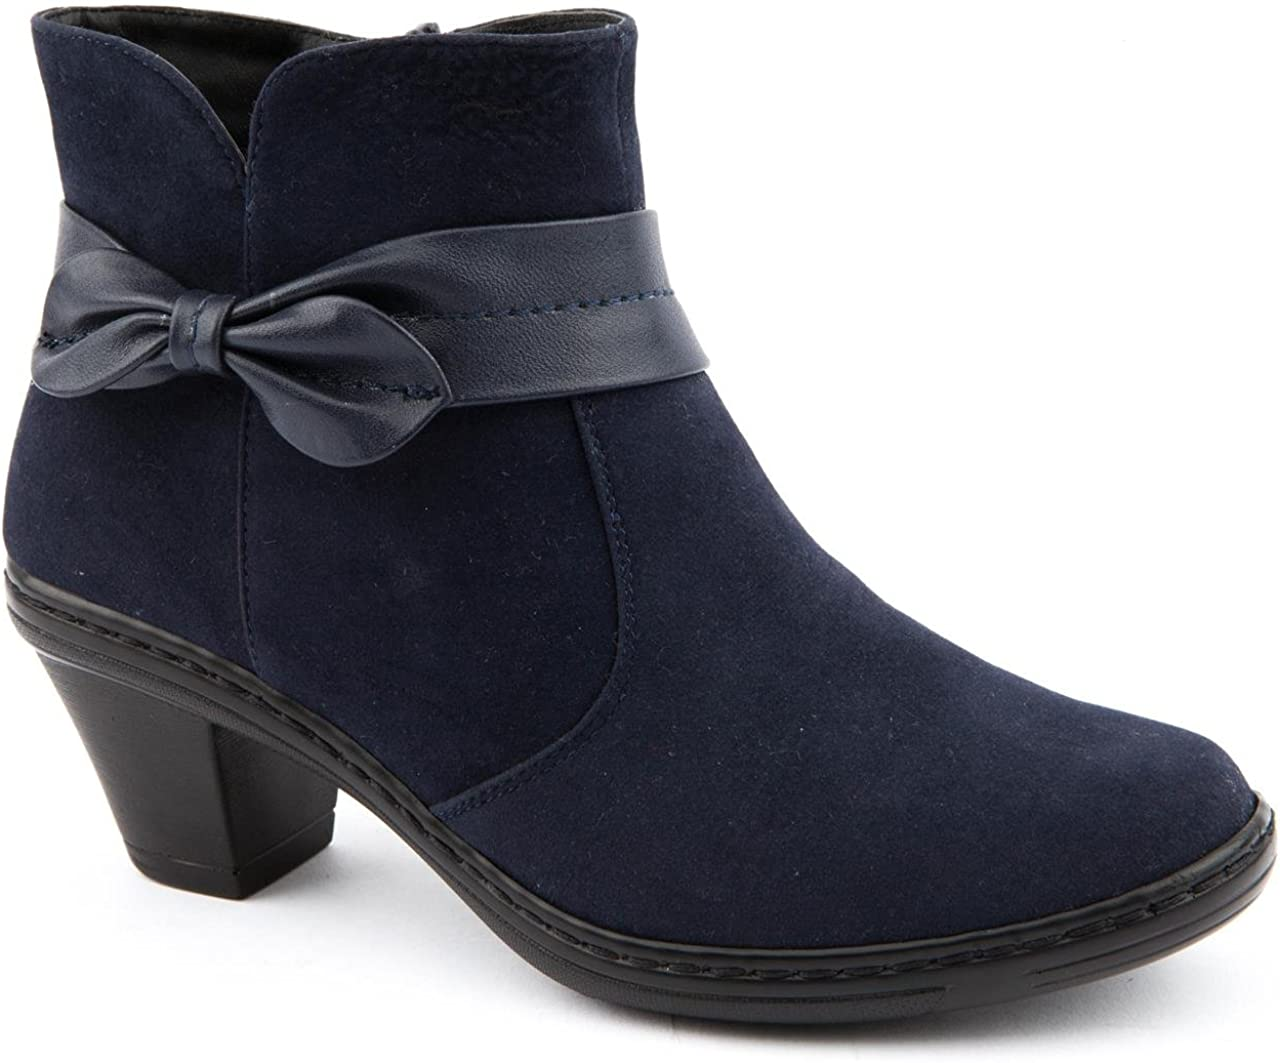 Bow Tie Navy Ankle Boots Size